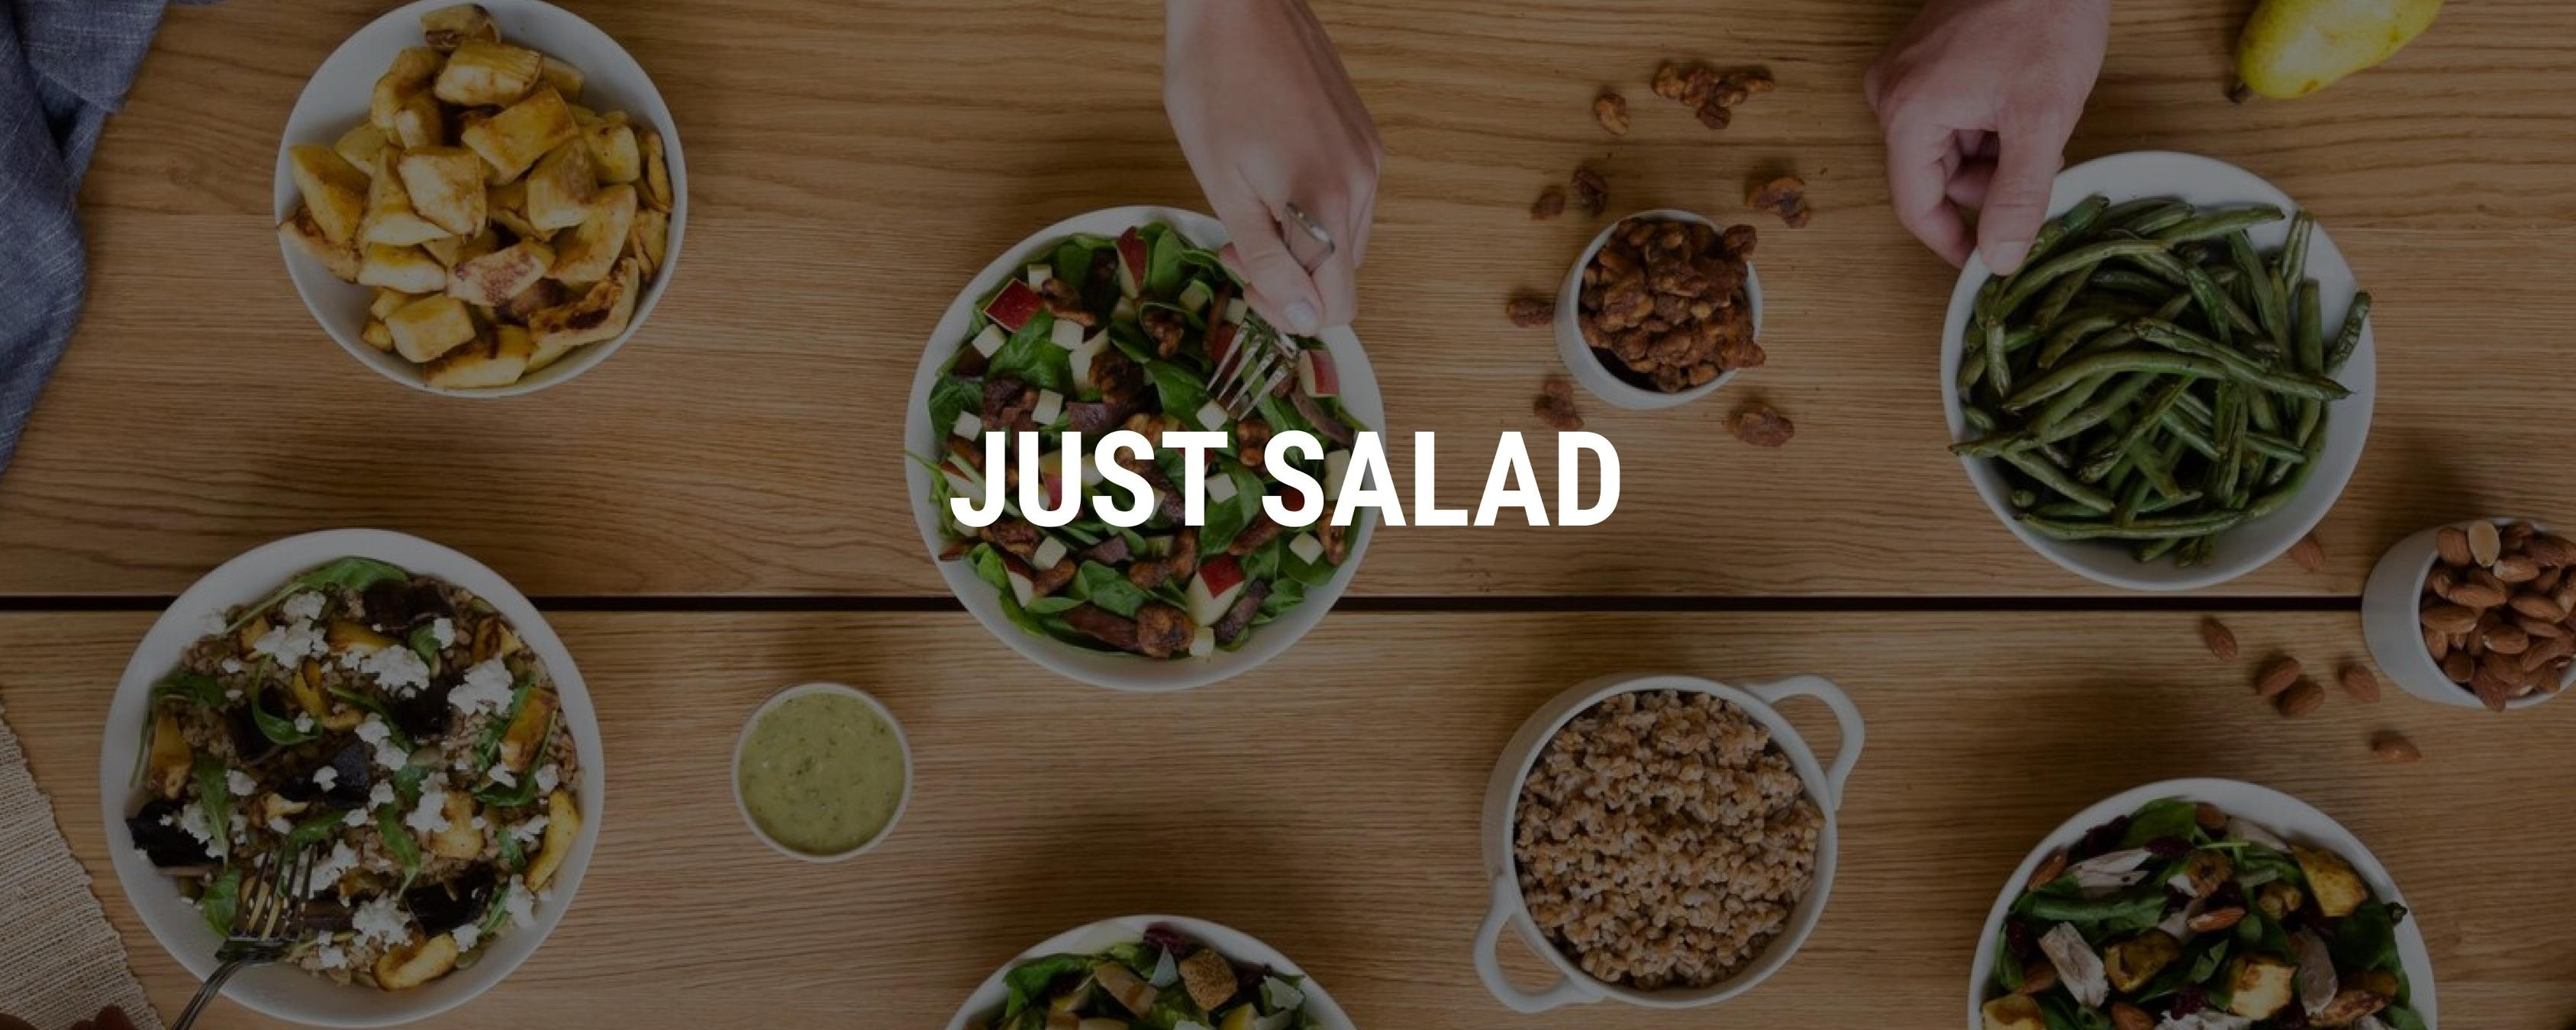 Just Salad Brand Cover